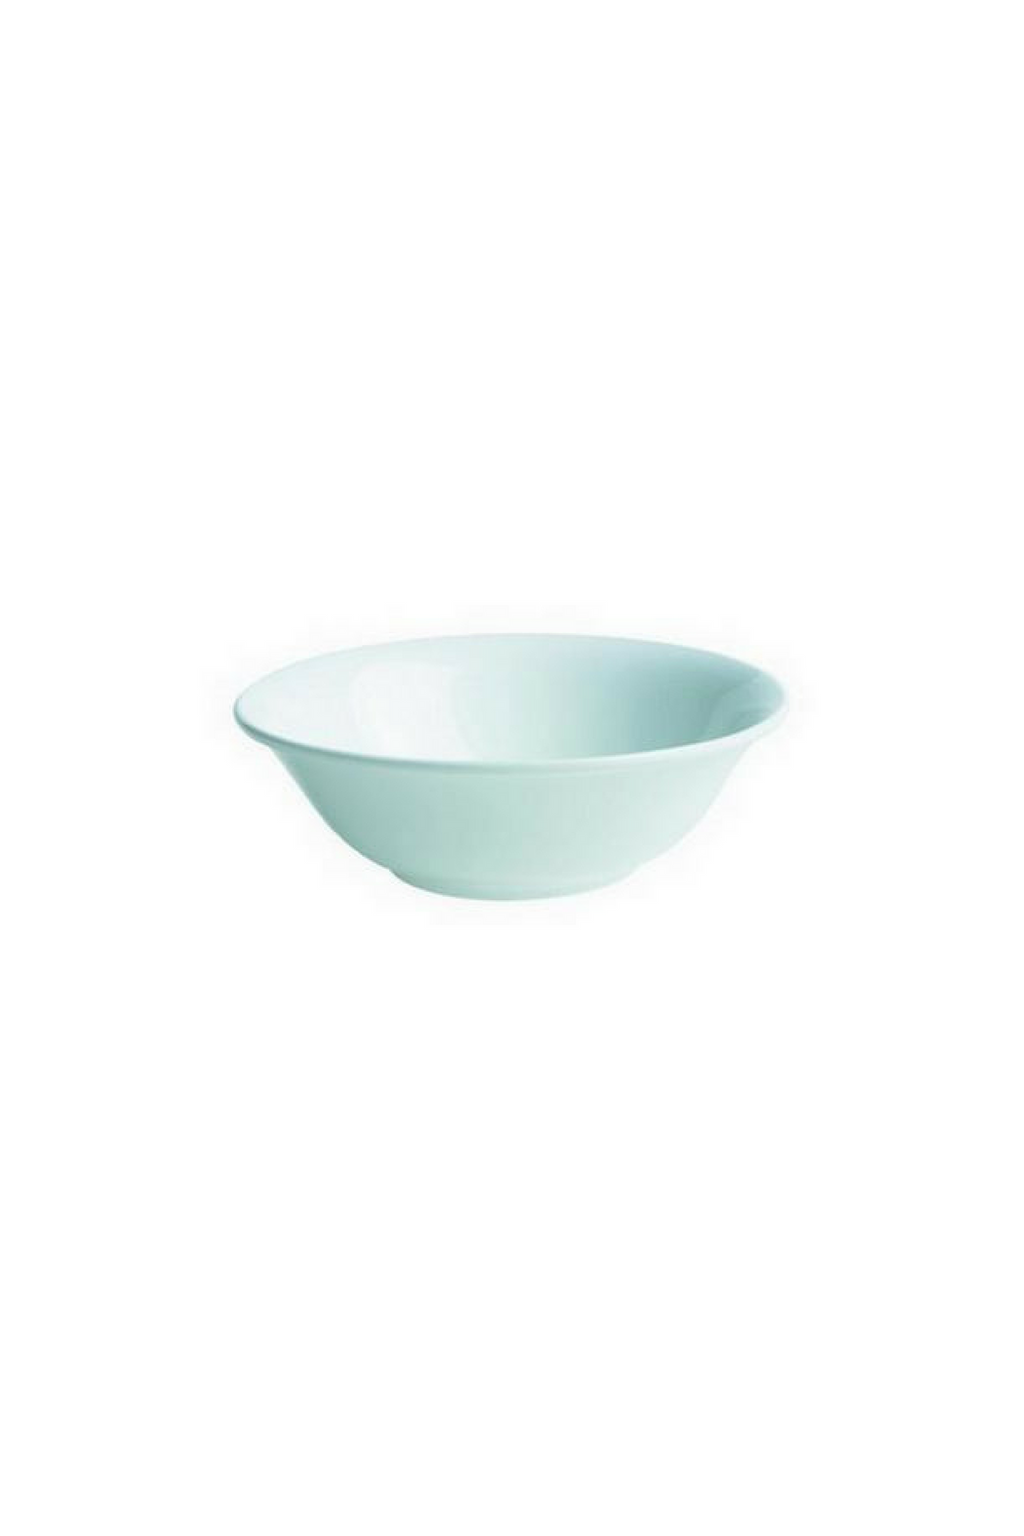 Crockery - Salad Bowls